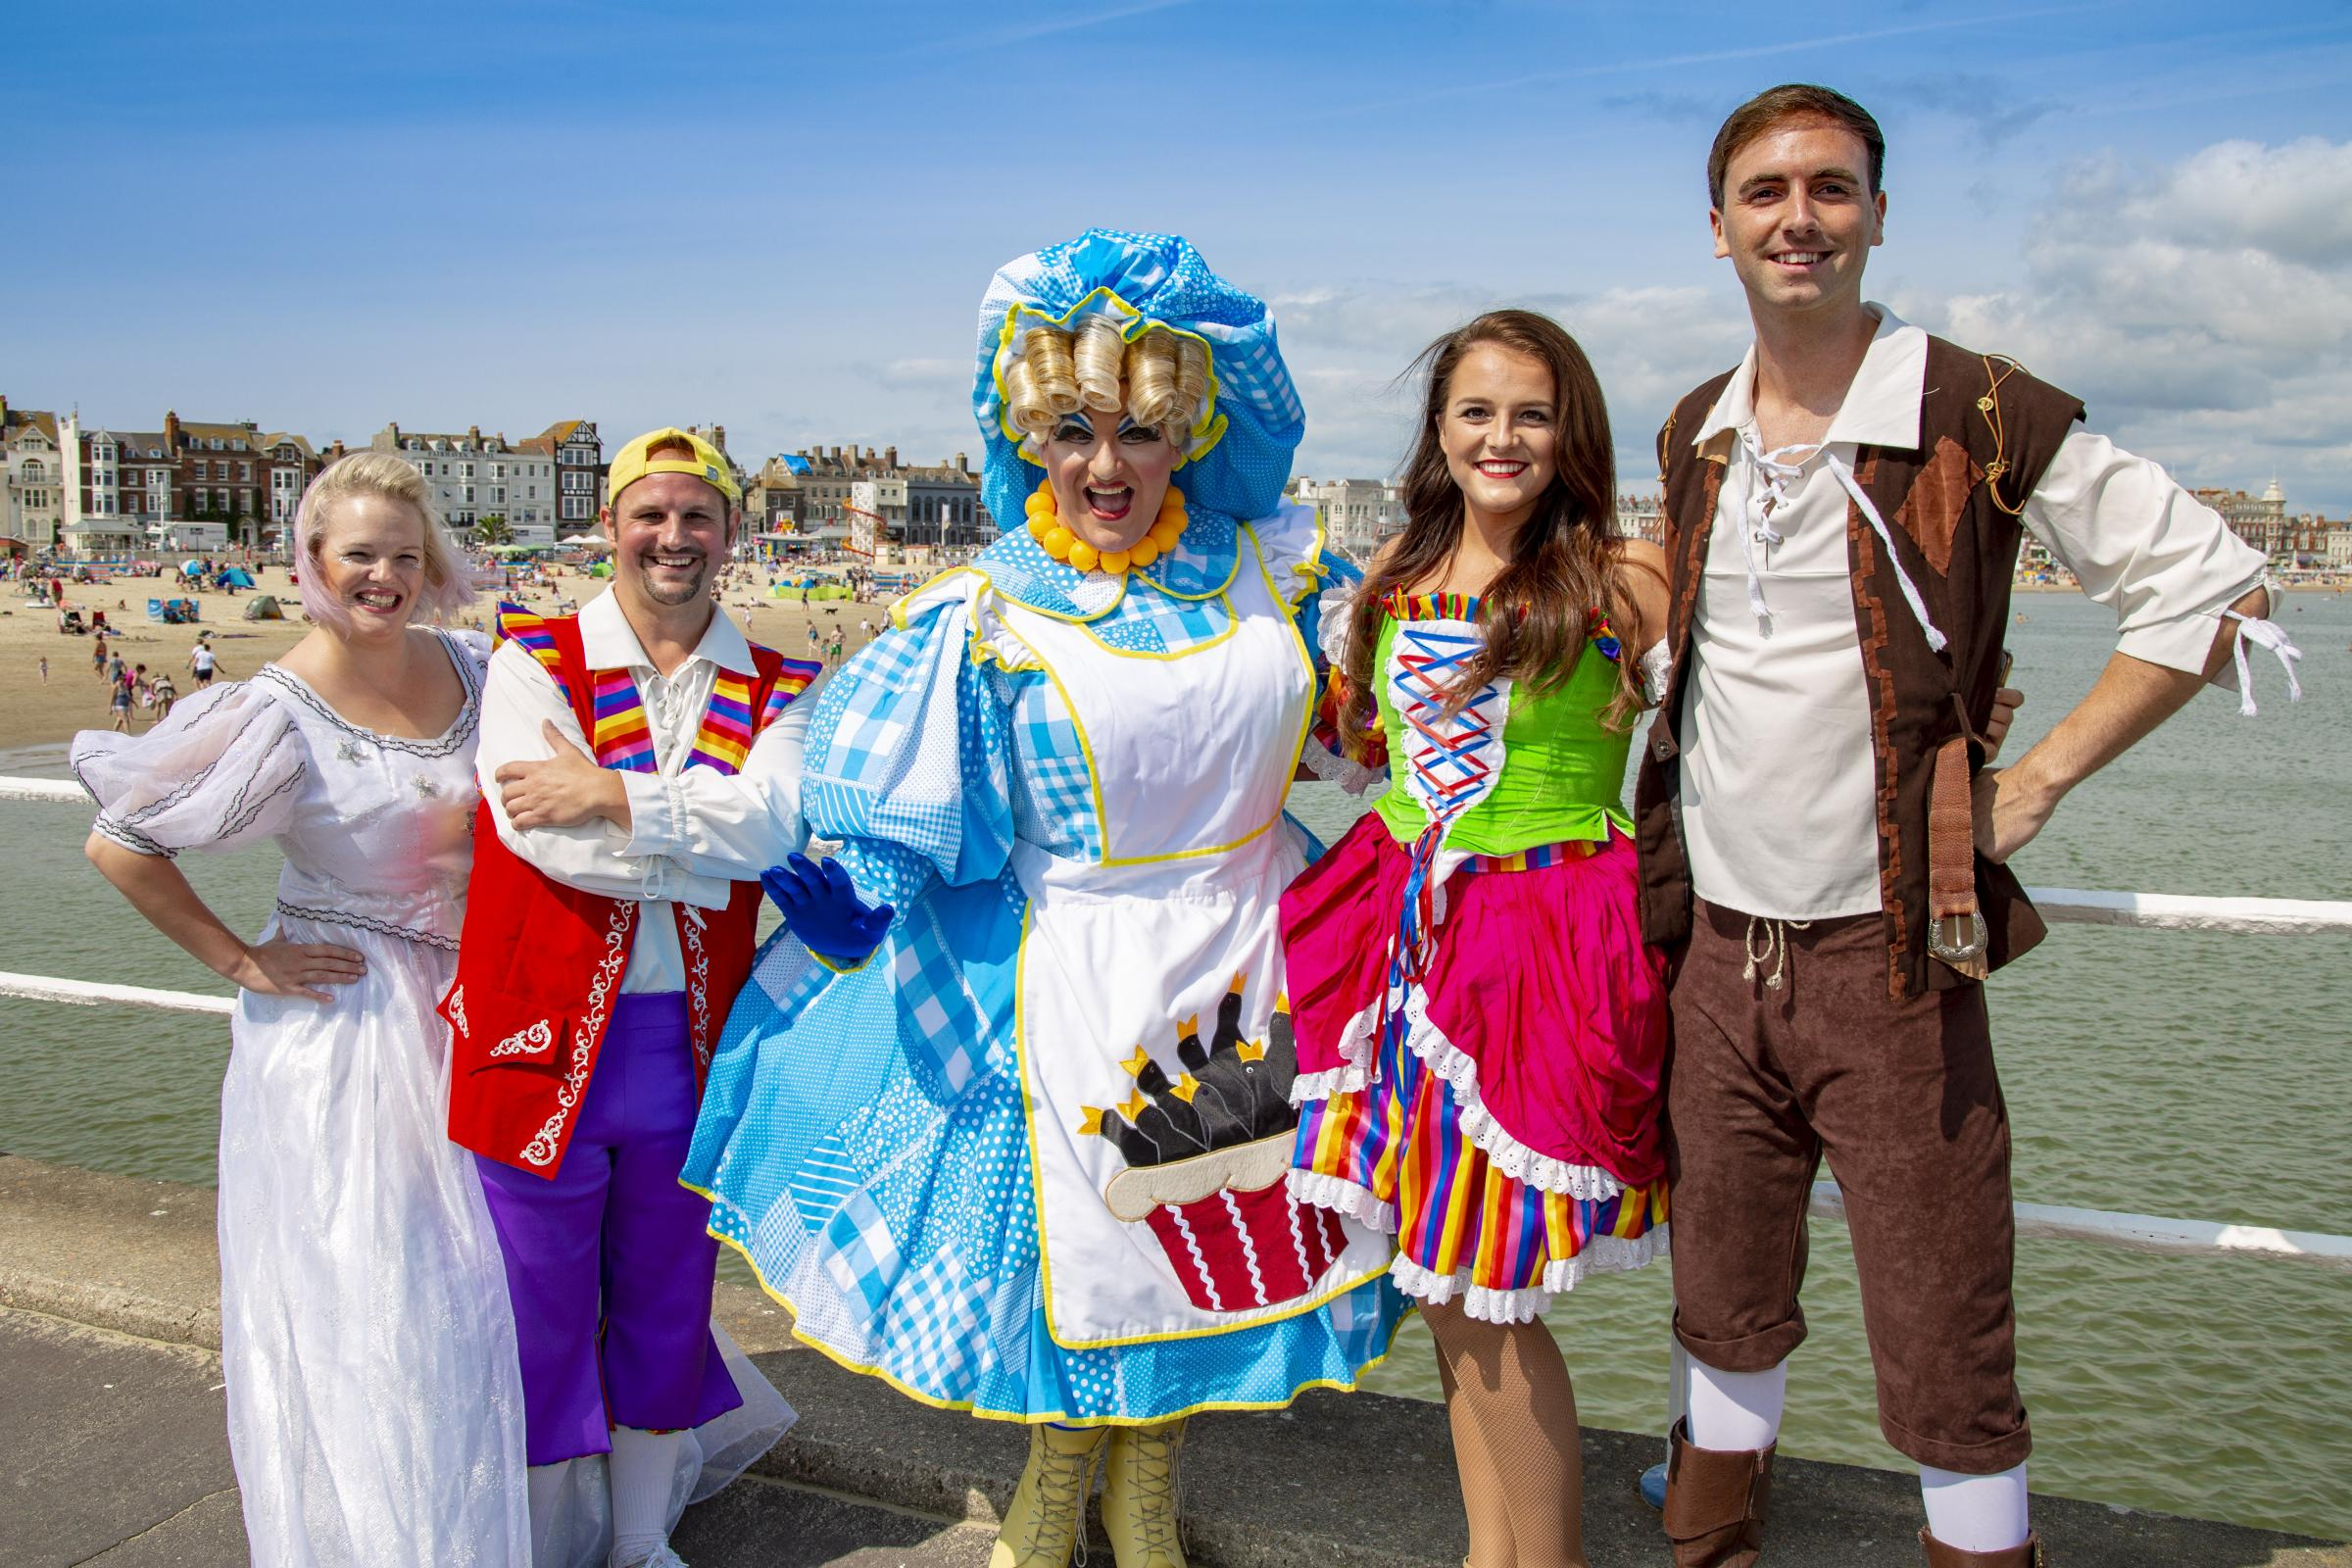 FUN: Dick Whittington begins at Weymouth Pavilion on December 15 and runs until January 5